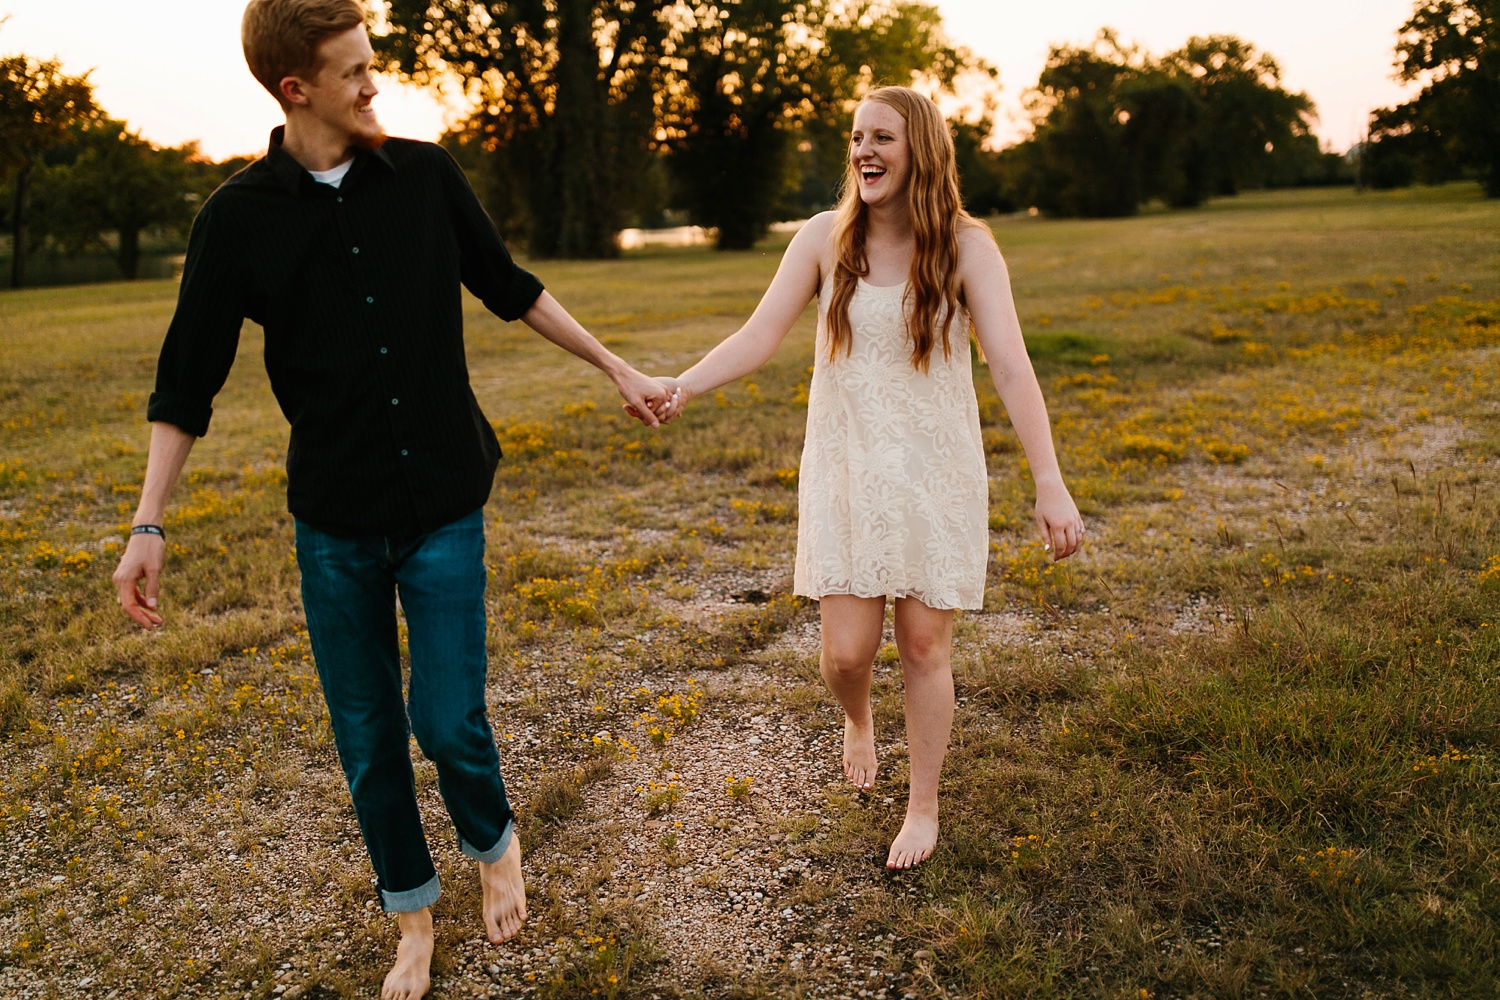 Kayla + Alex _ a joyful and loving engagement shoot in Waco, Texas by North Texas Wedding Photographer Rachel Meagan Photography _55